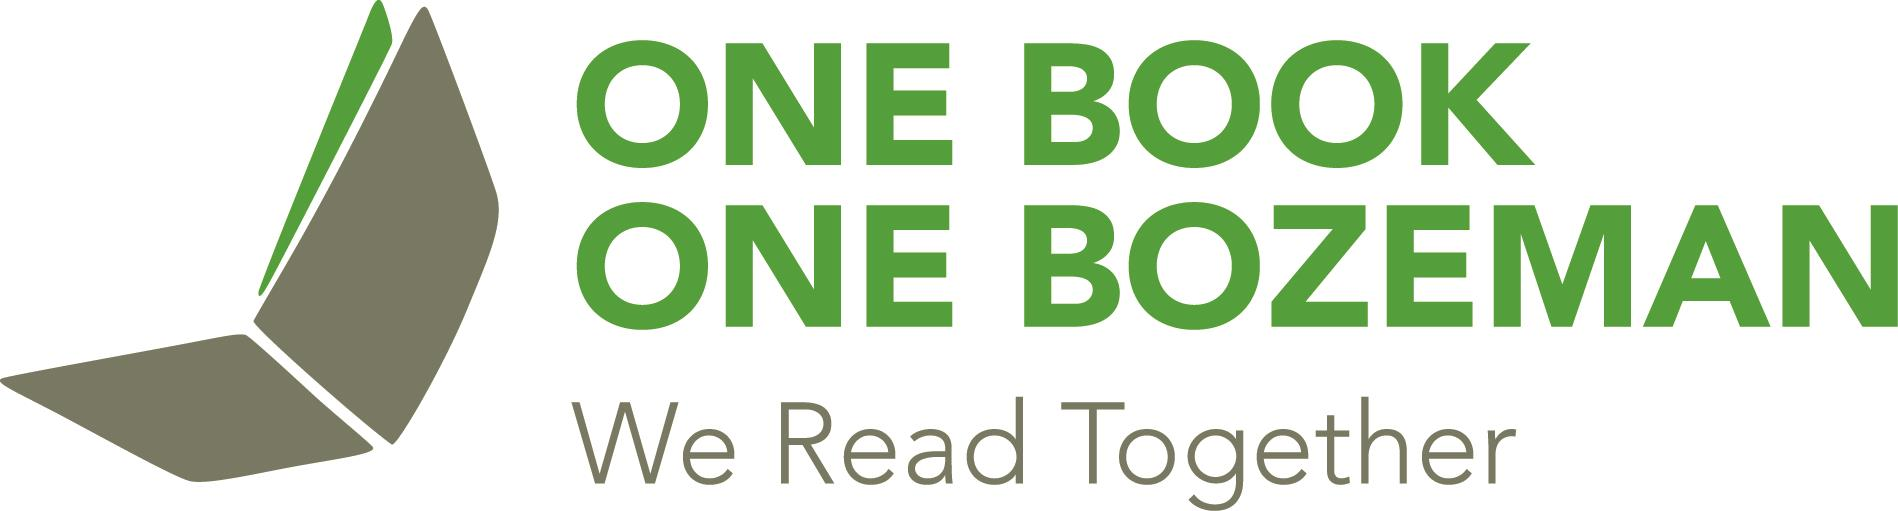 one book one bozeman logo